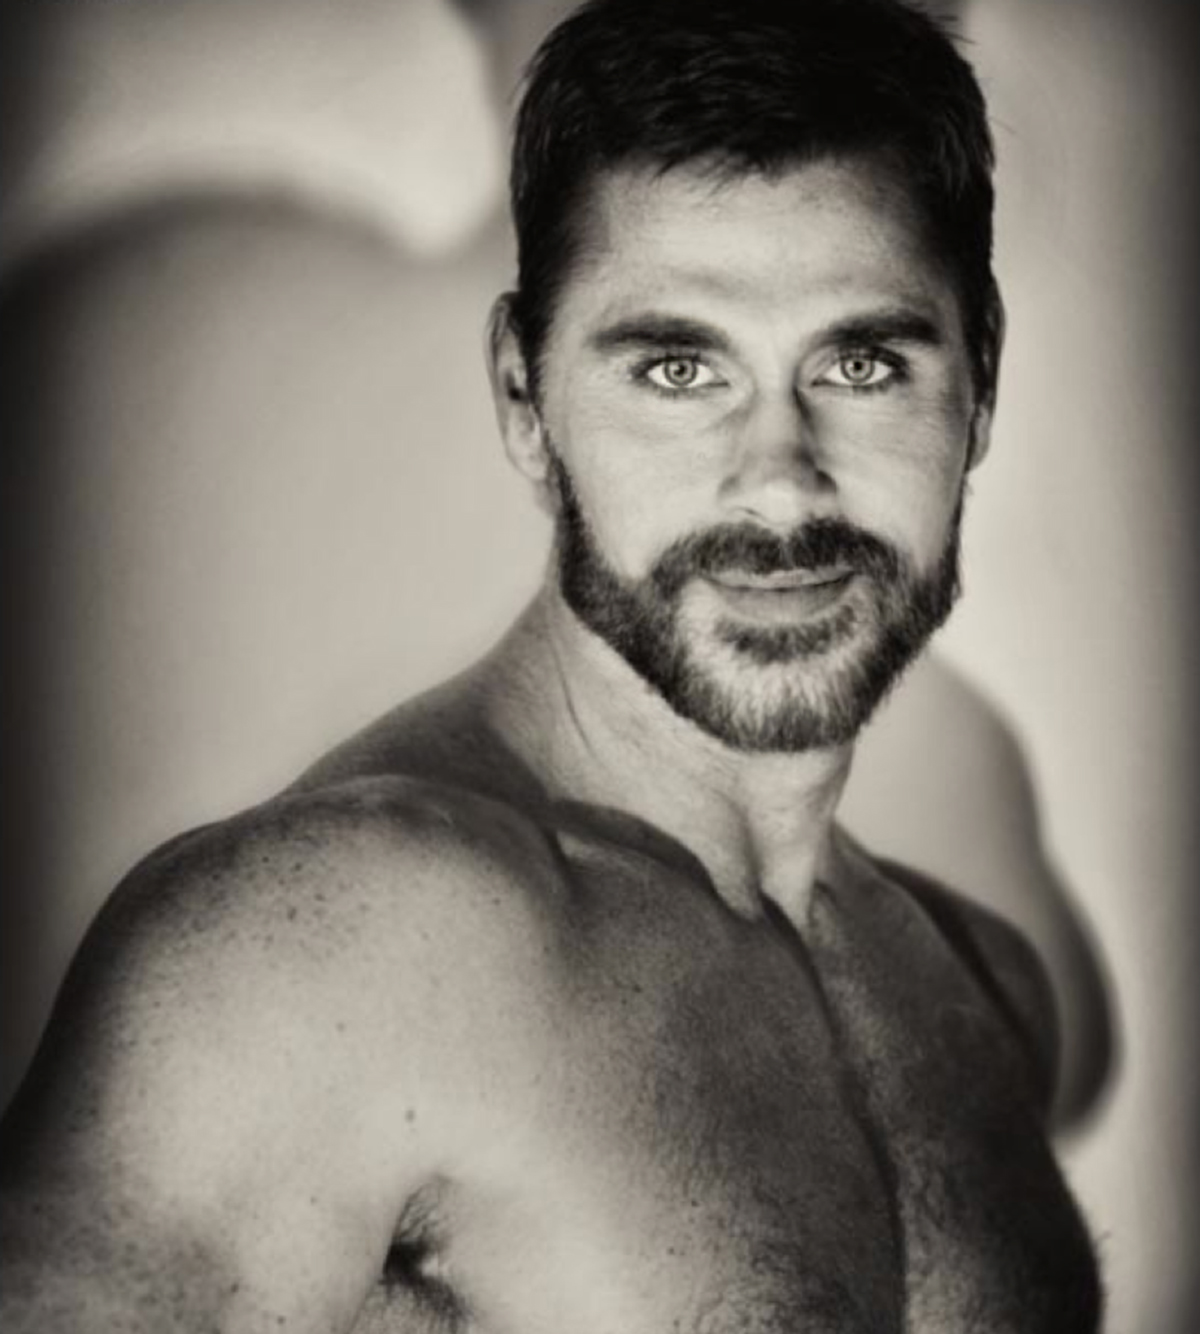 UNB Model Profile: Jack Mackenroth